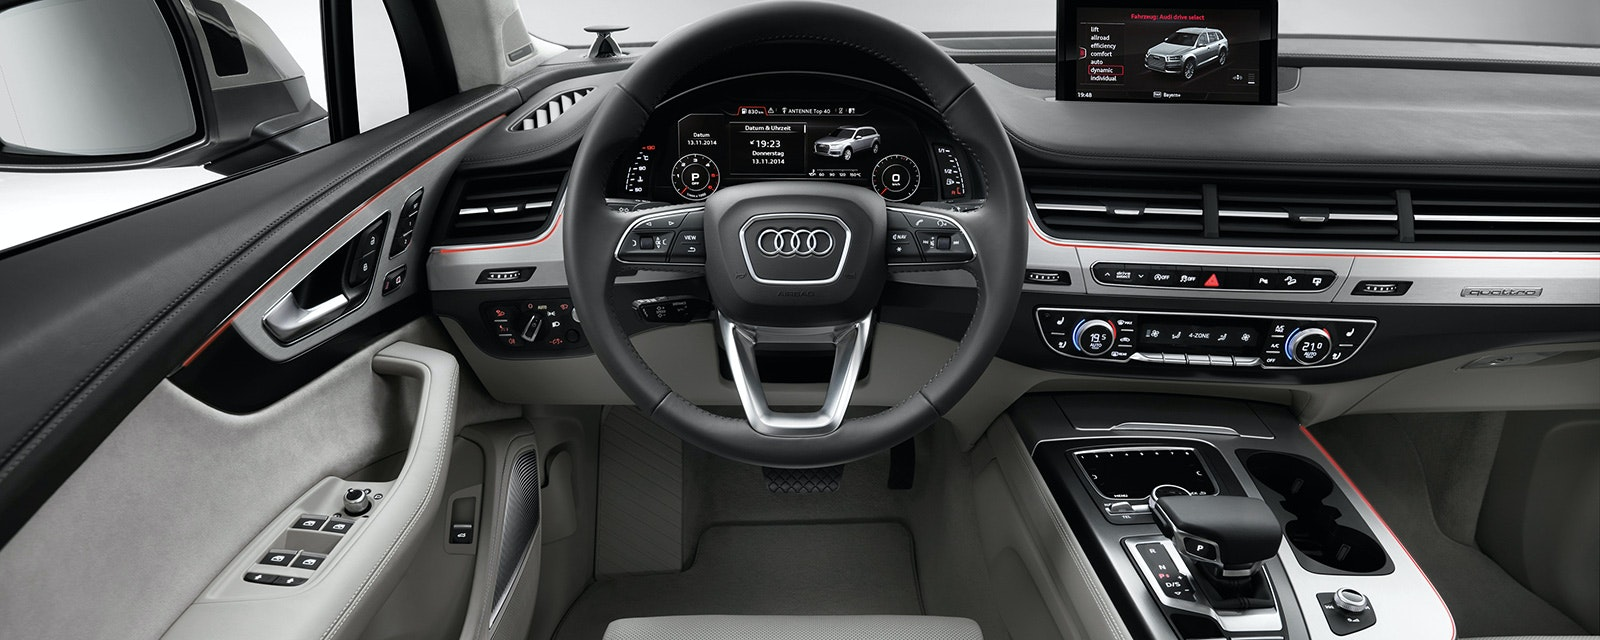 The Audi Q7 Has One Of The Best Interiors The Ingolstadt Based Brand Has  Ever Designed. The Dashboard Is Wonderfully Simple And Built From Fantastic  ...